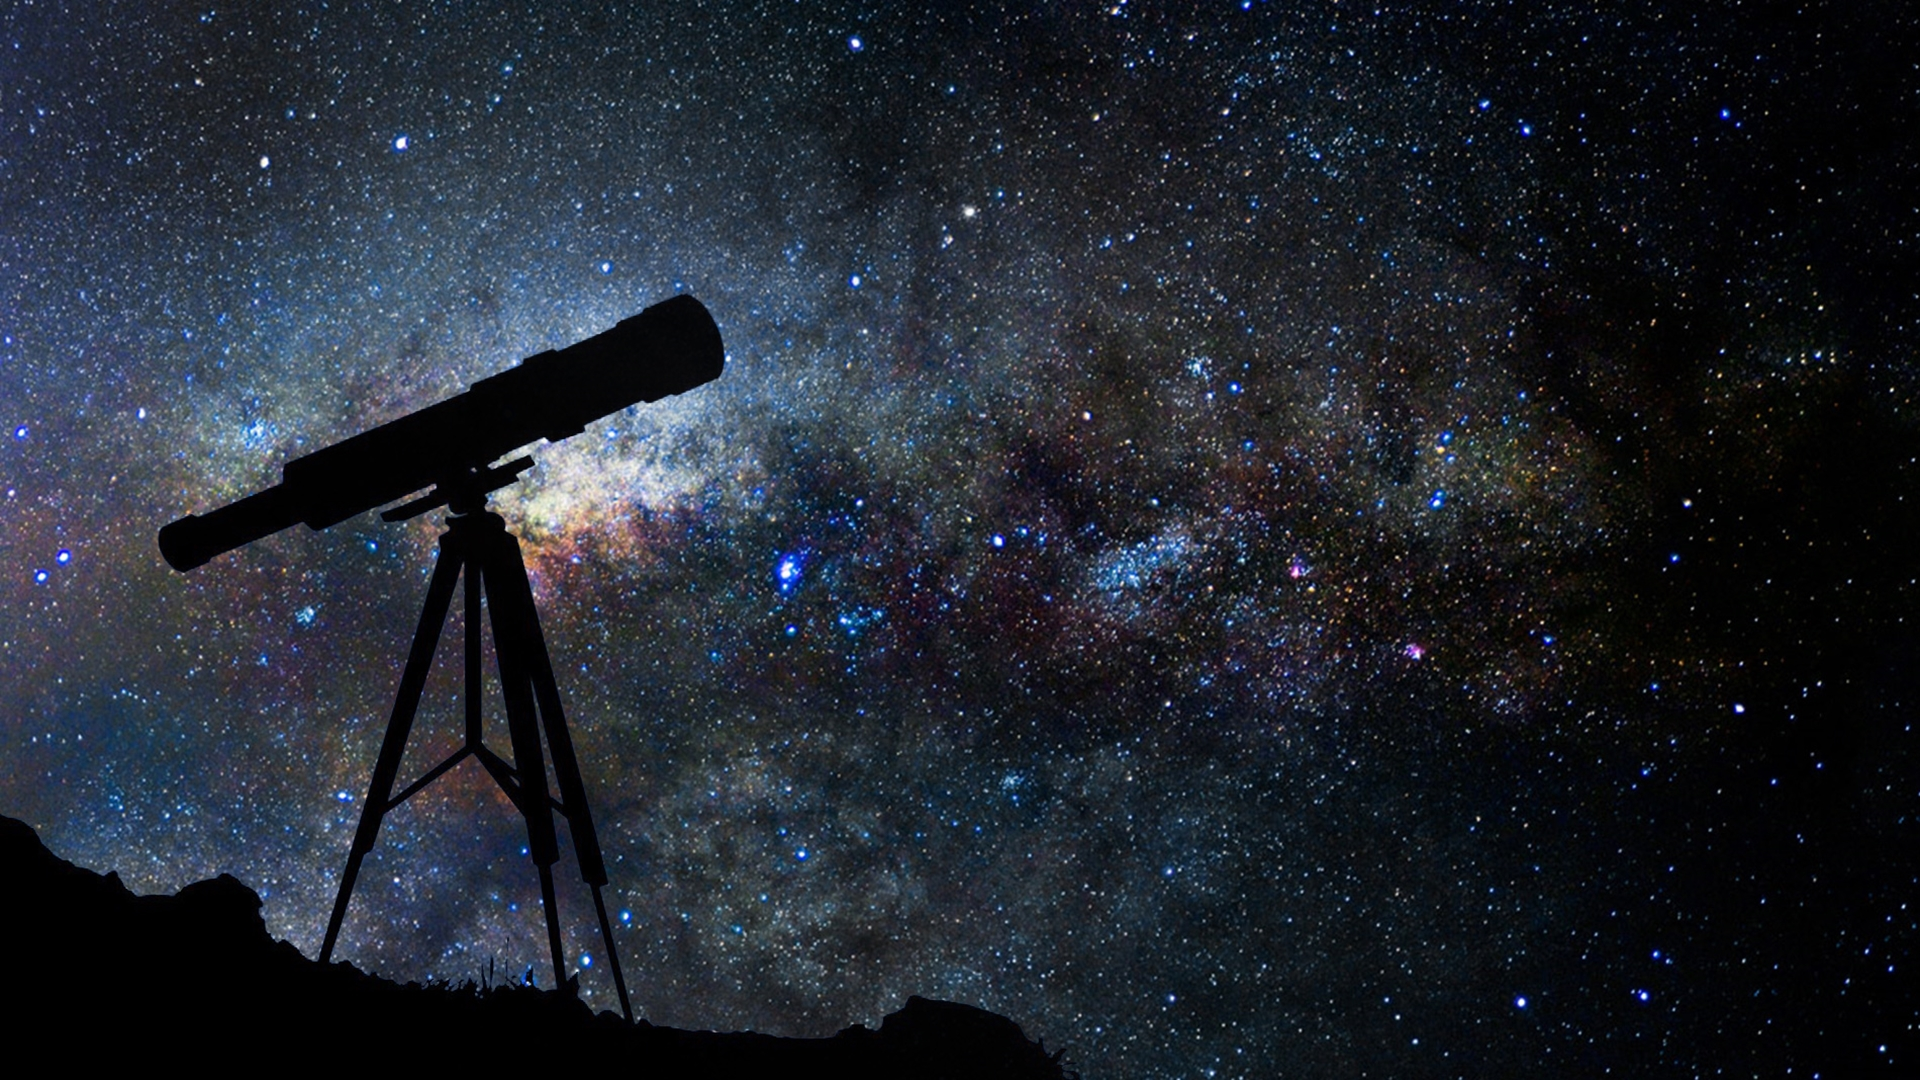 telescope-wallpaper-3